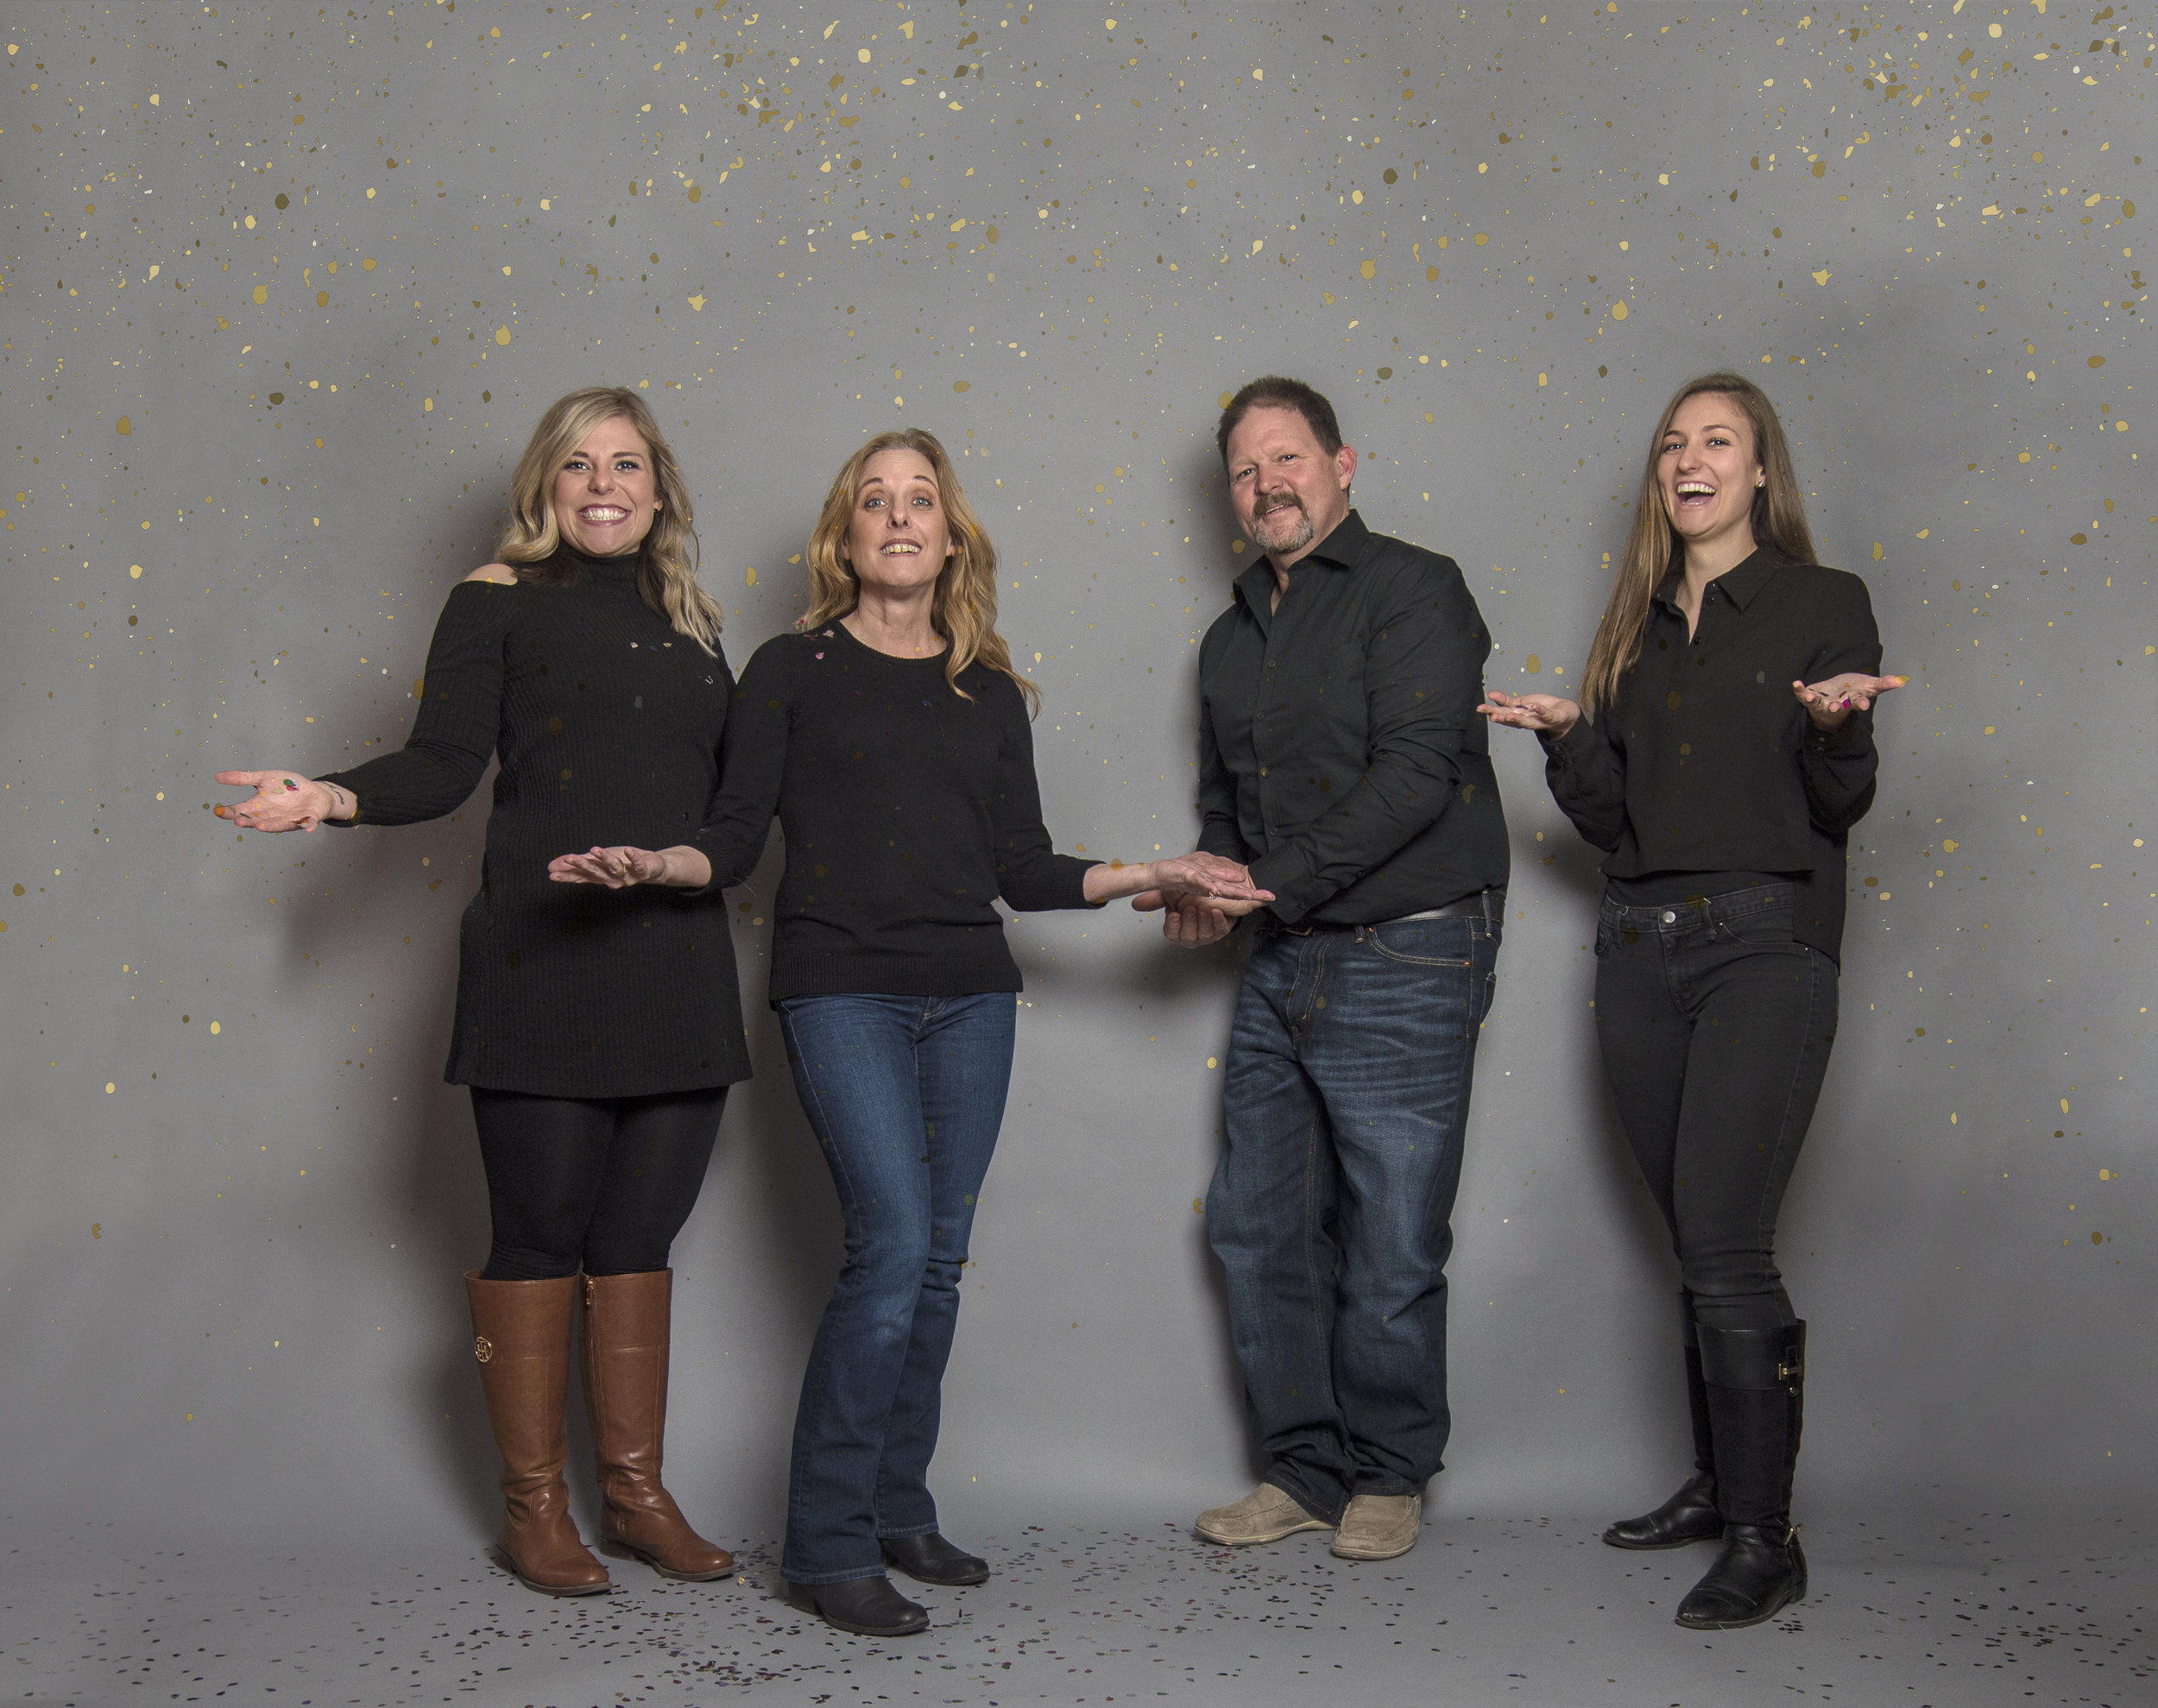 Family Photography with Confetti...Could it get more fun?